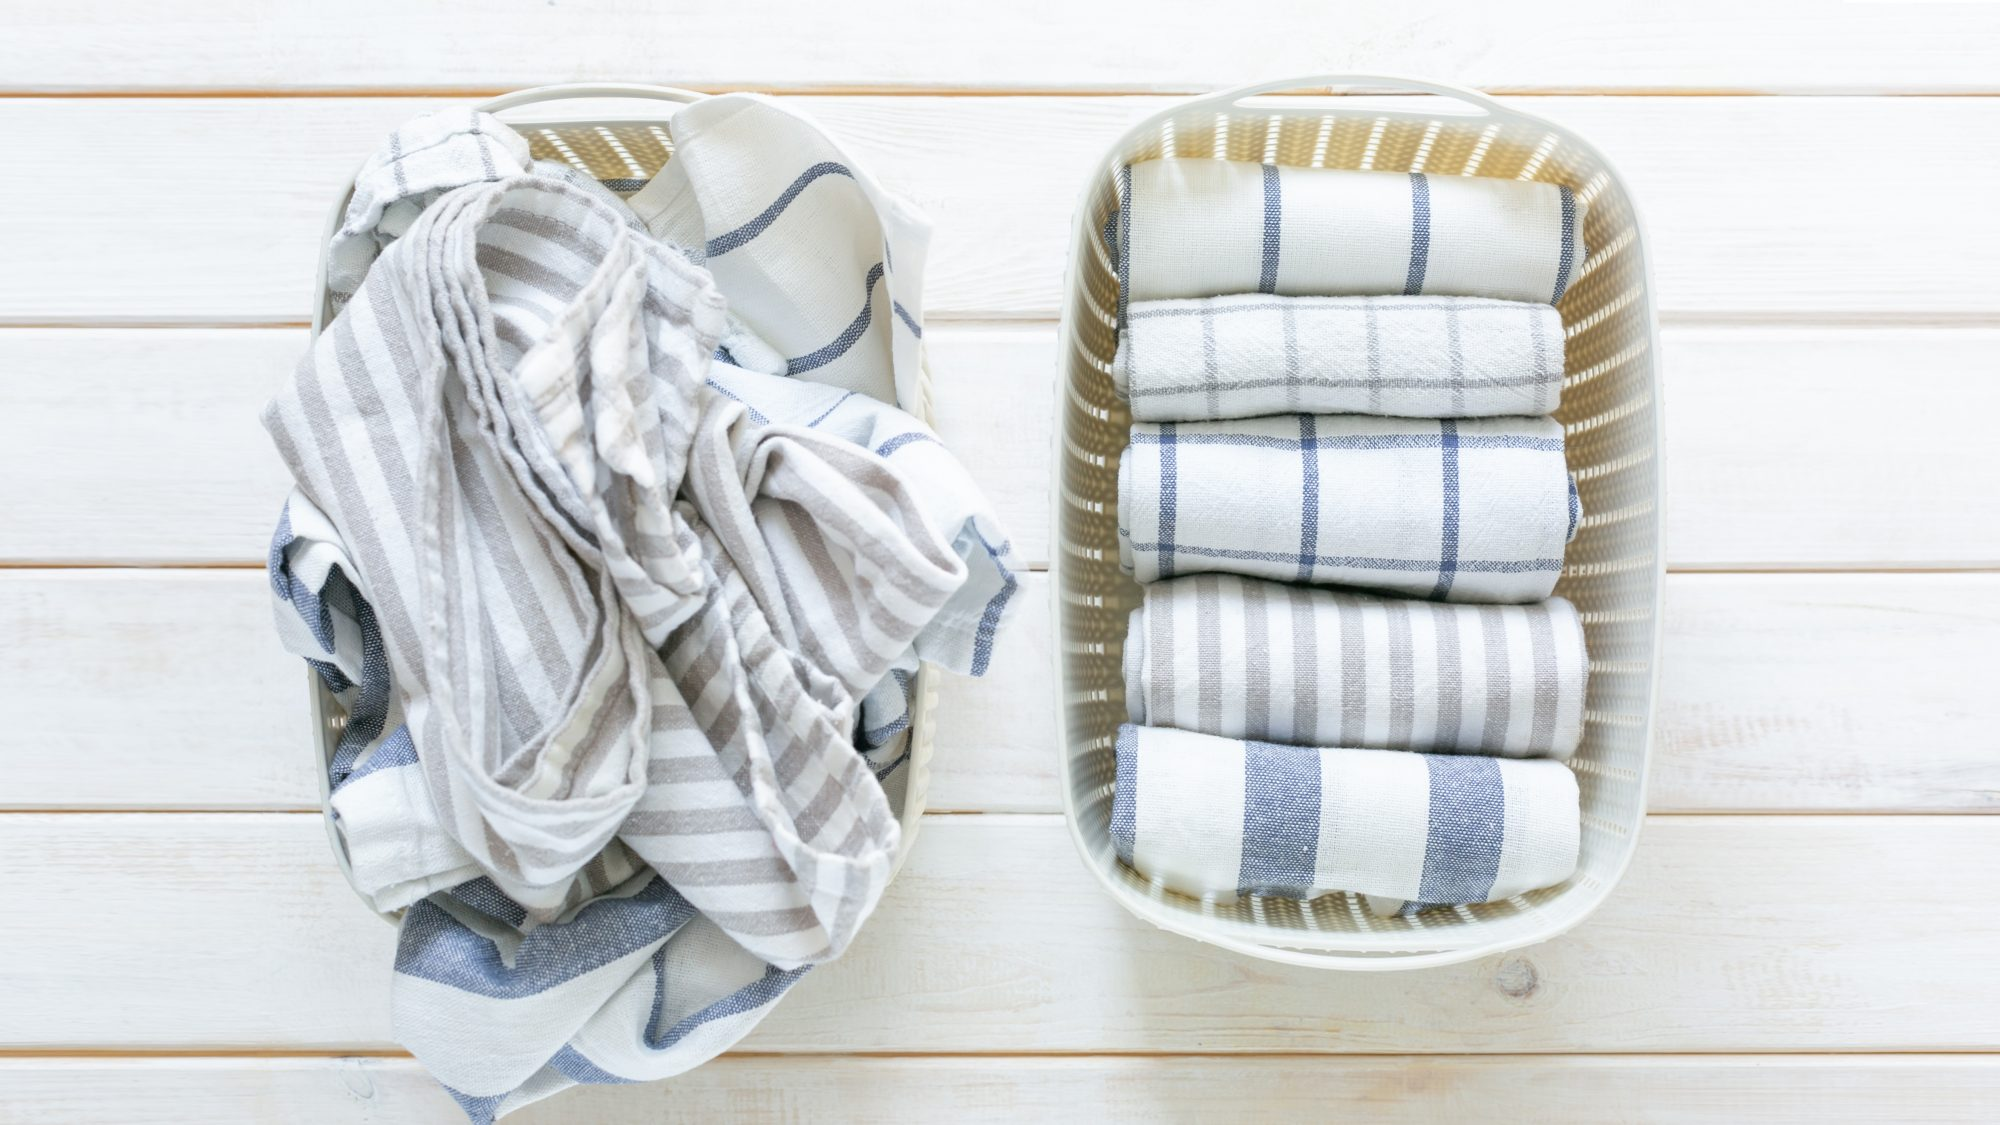 How to Sanitize Laundry: two laundry baskets with towels